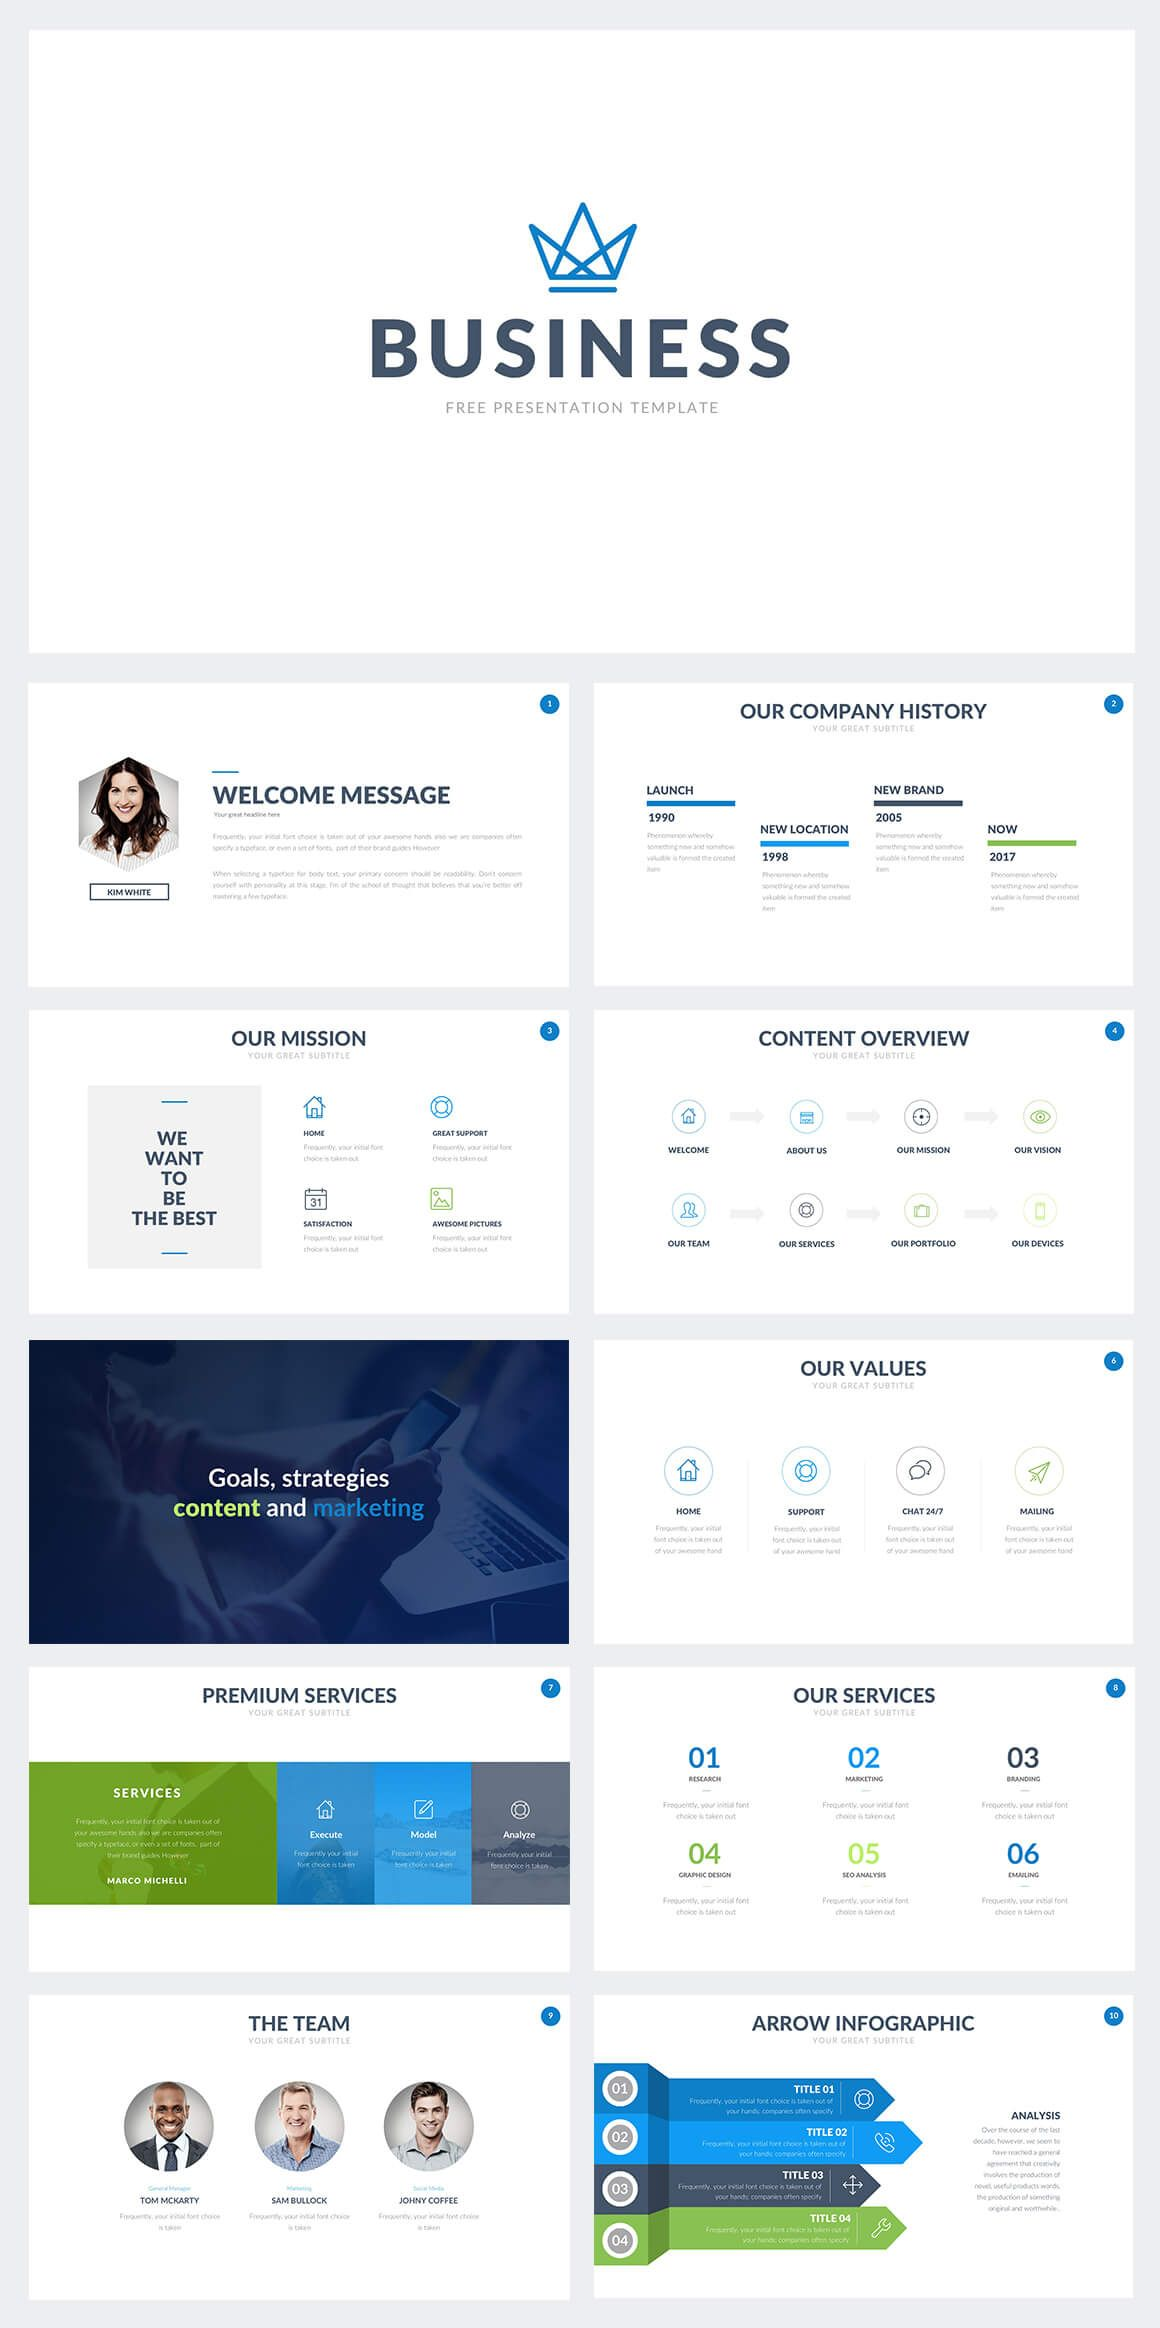 free business powerpoint template | trending powerpoint templates, Modern powerpoint